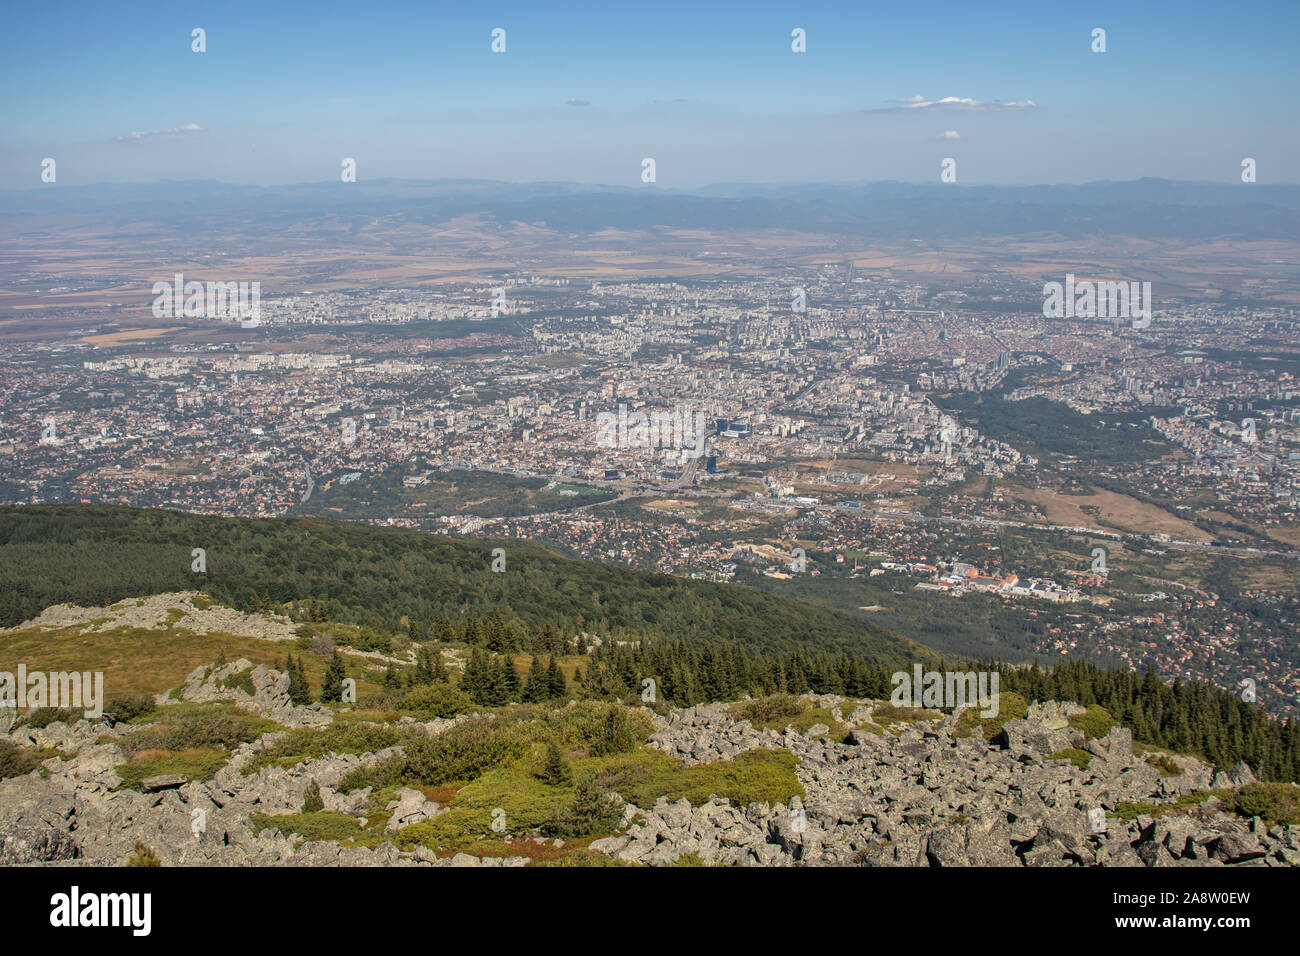 Amazing panorama of city of Sofia from Kamen Del Peak at Vitosha Mountain, Bulgaria Stock Photo